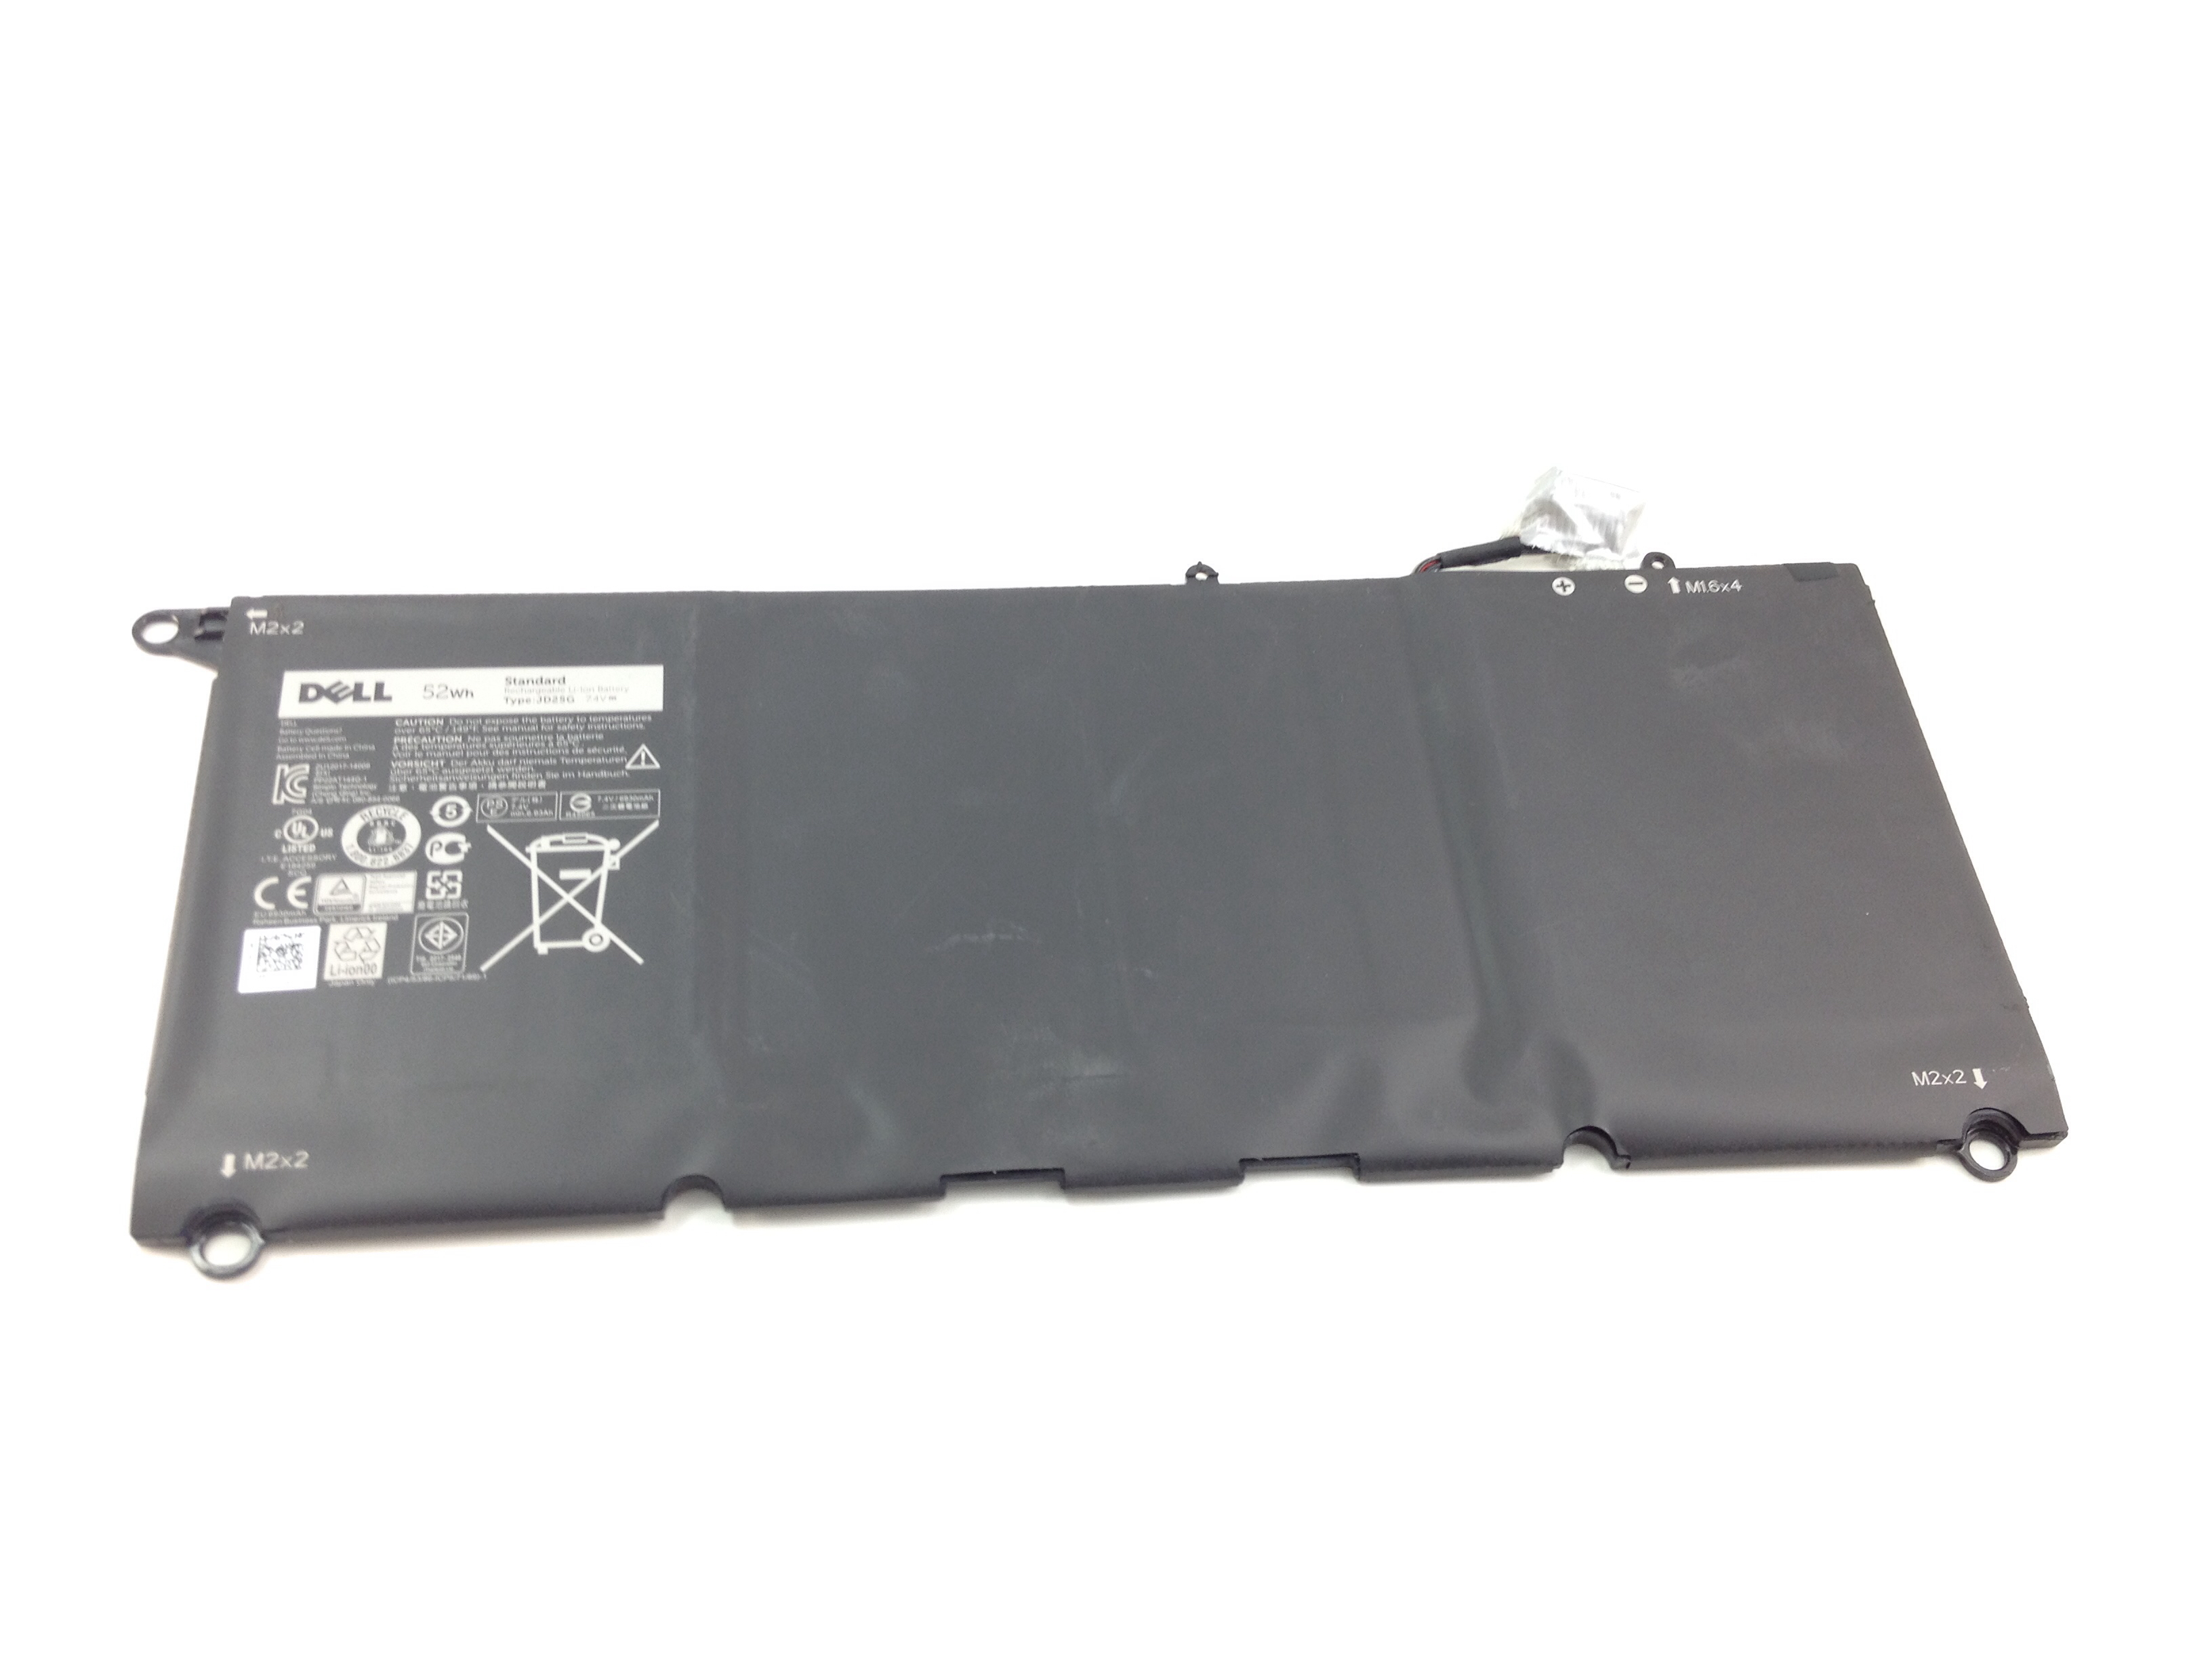 Dell XPS 13 9343 52Wh 6 Cell Laptop Battery (00N7T6)